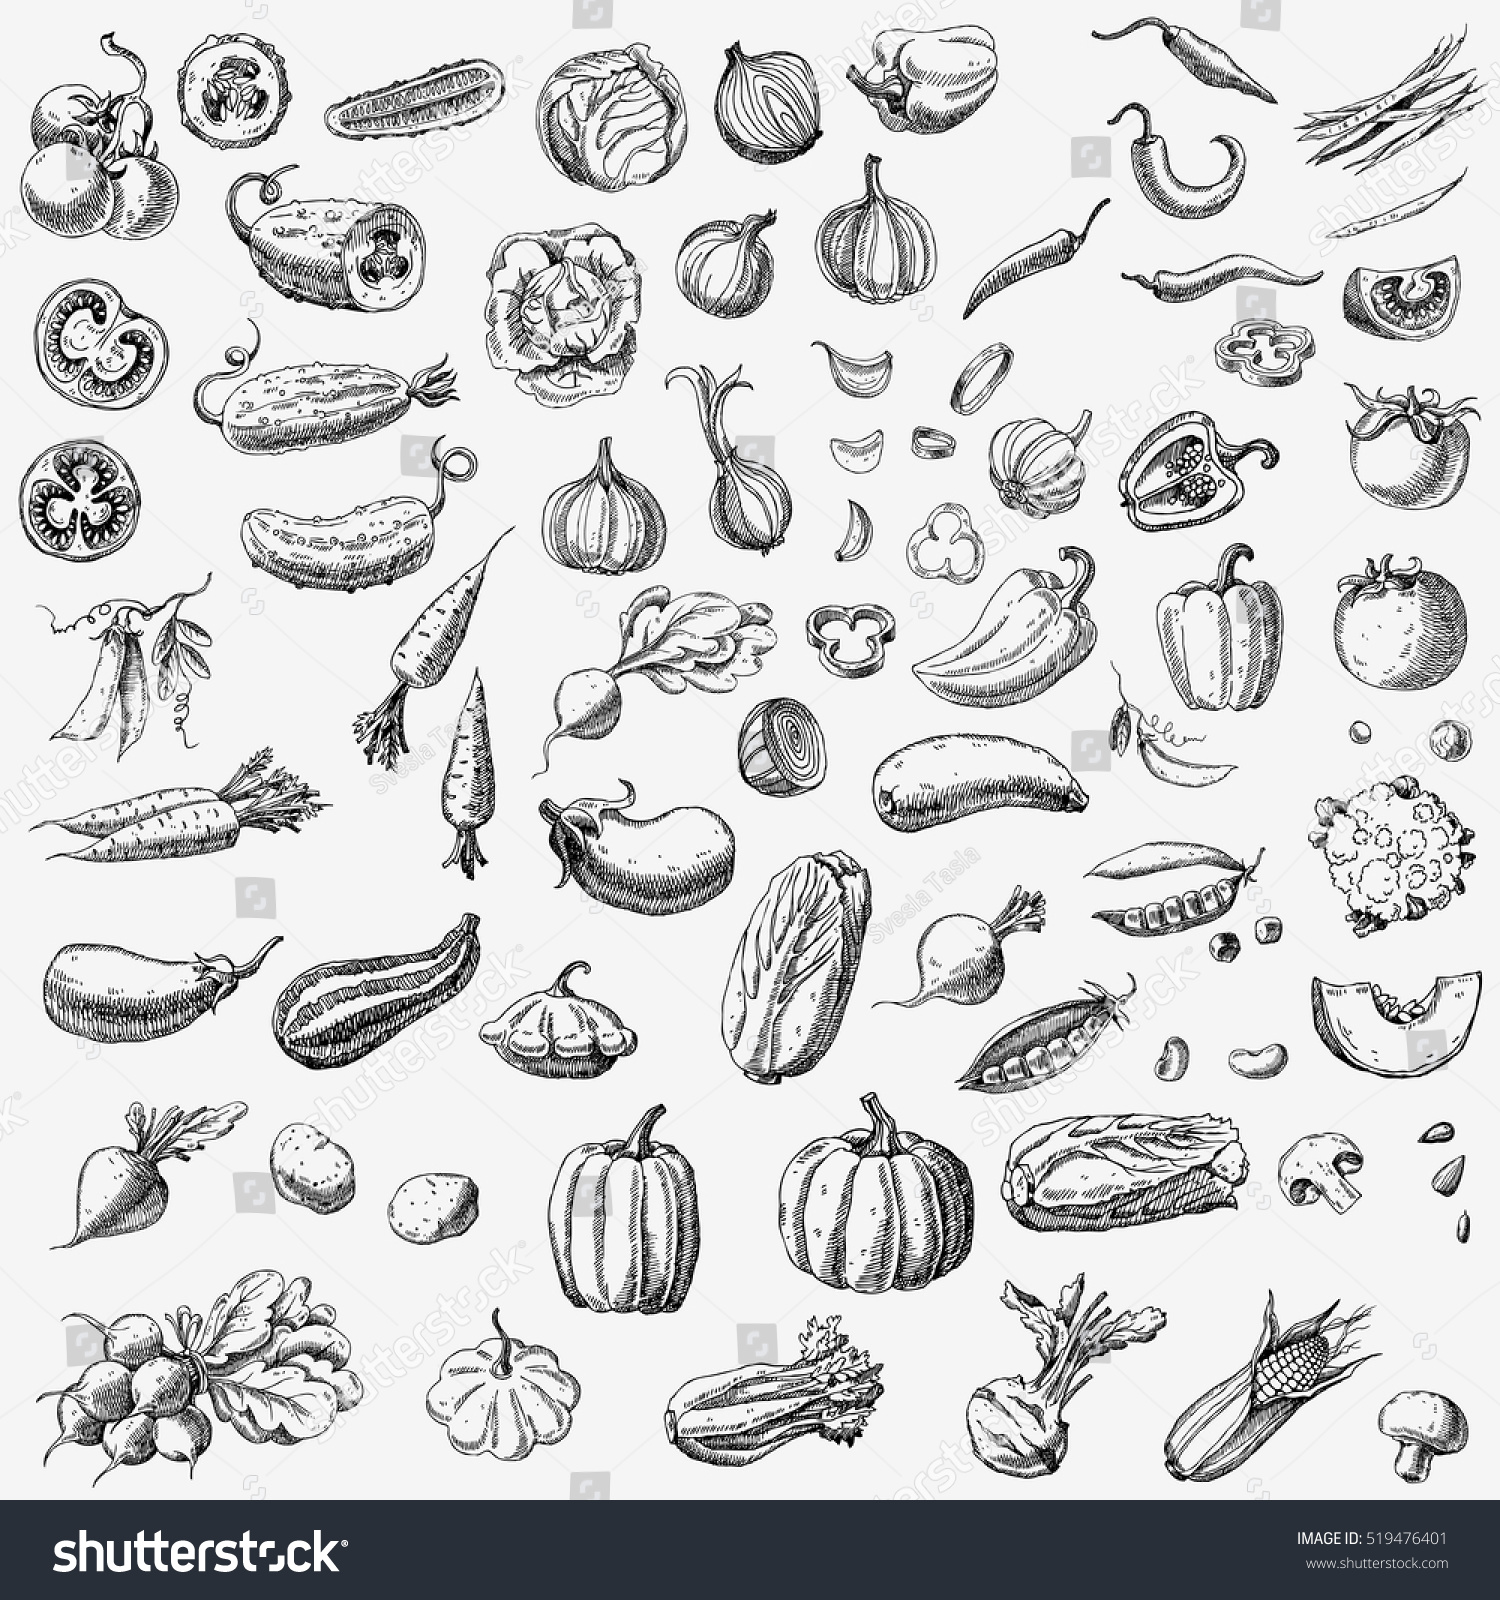 Set of various hand drawn vegetables. Sketches of different food. Isolated on white #519476401